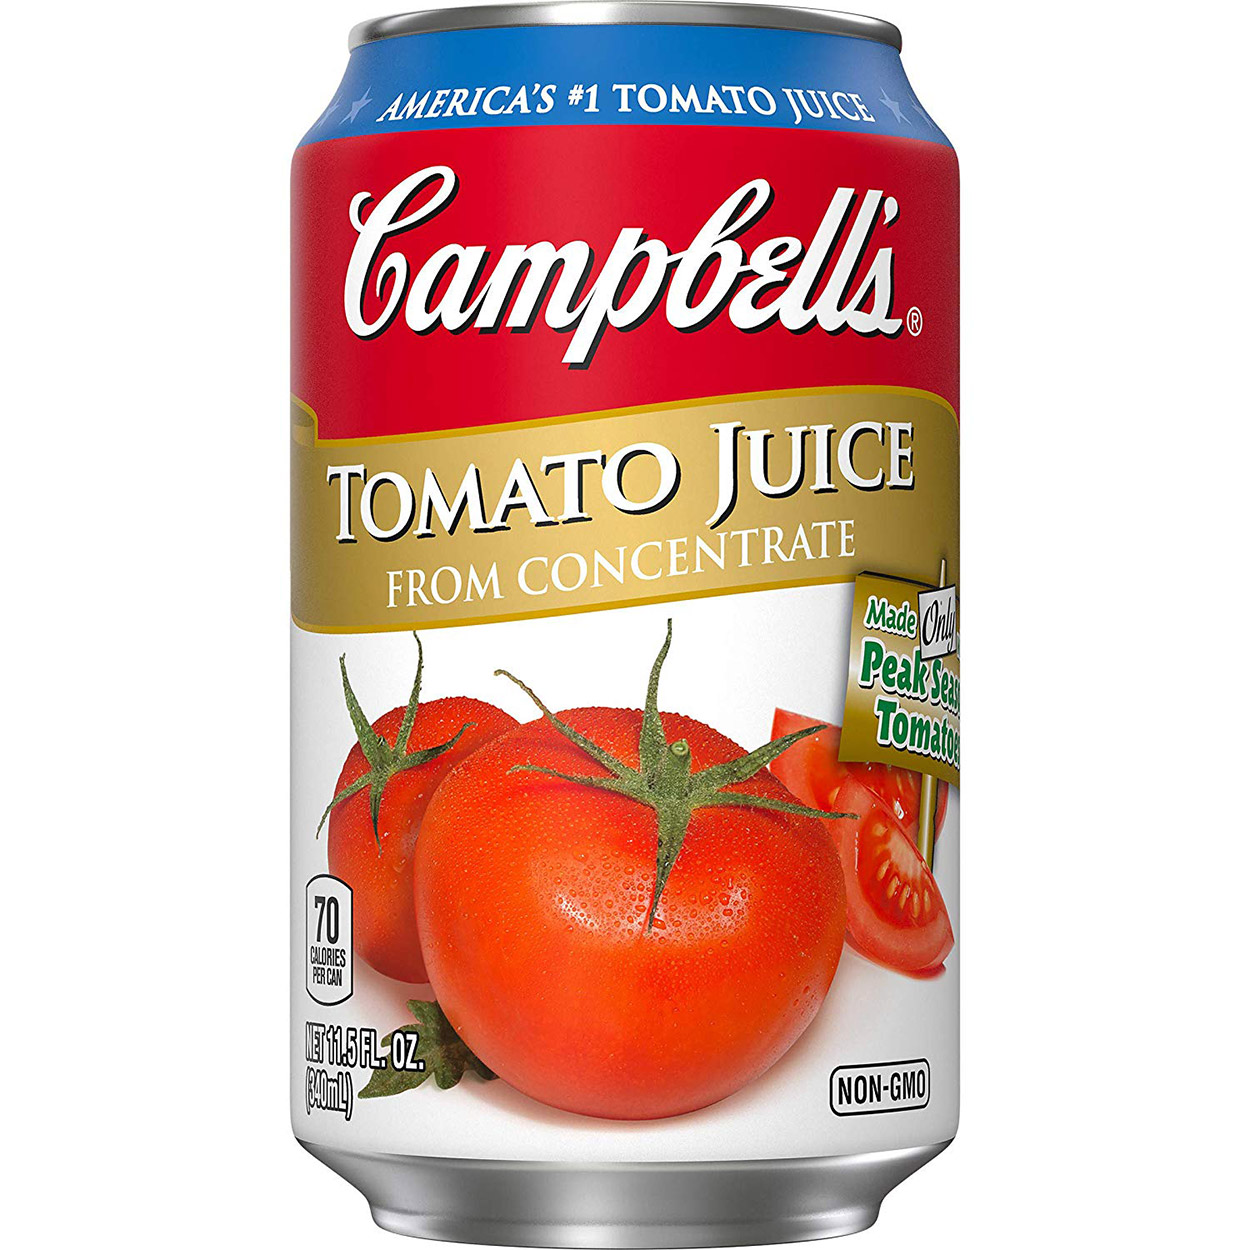 Campbell's tomatoe juice can